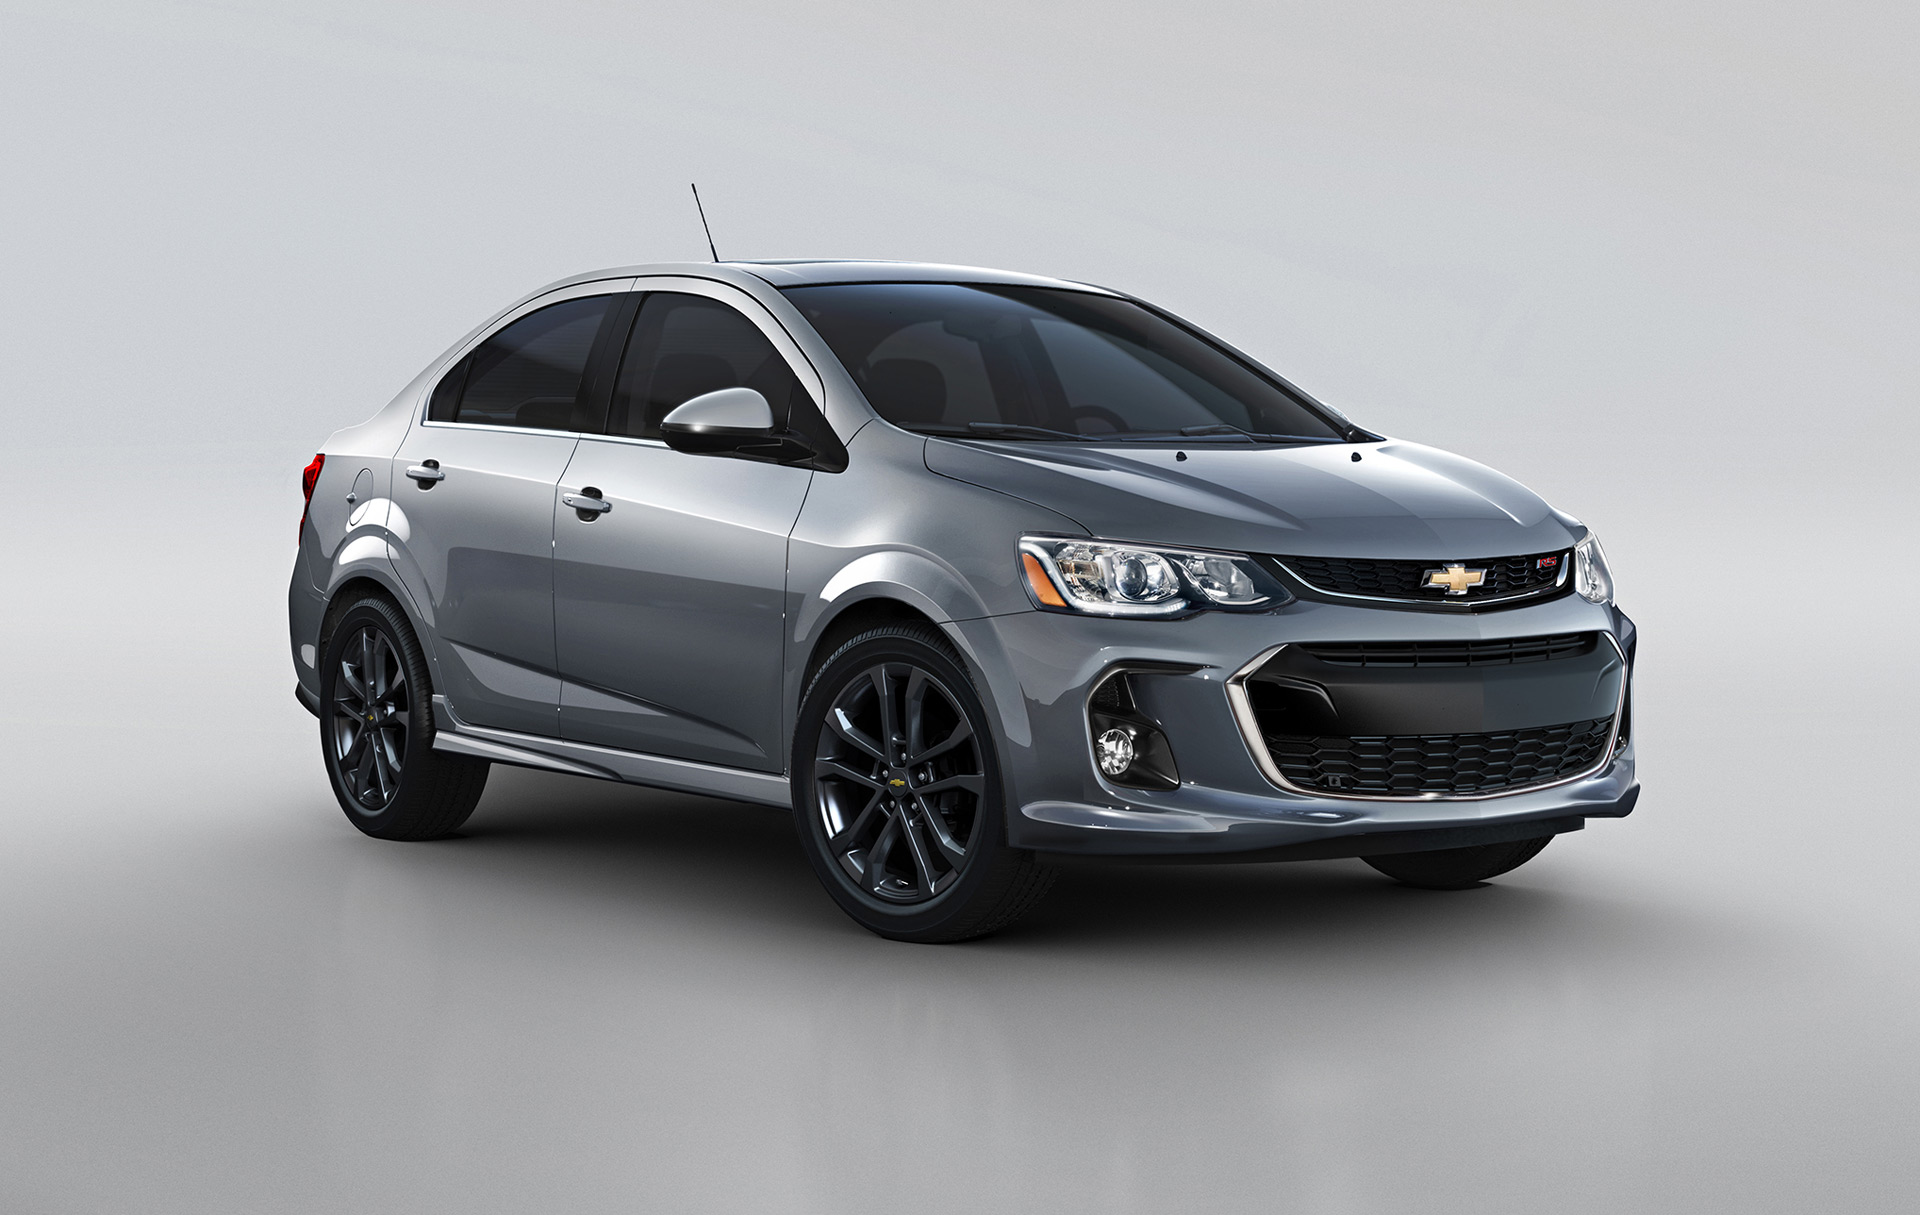 2017 Chevrolet Sonic Chevy Gas Mileage The Car Connection